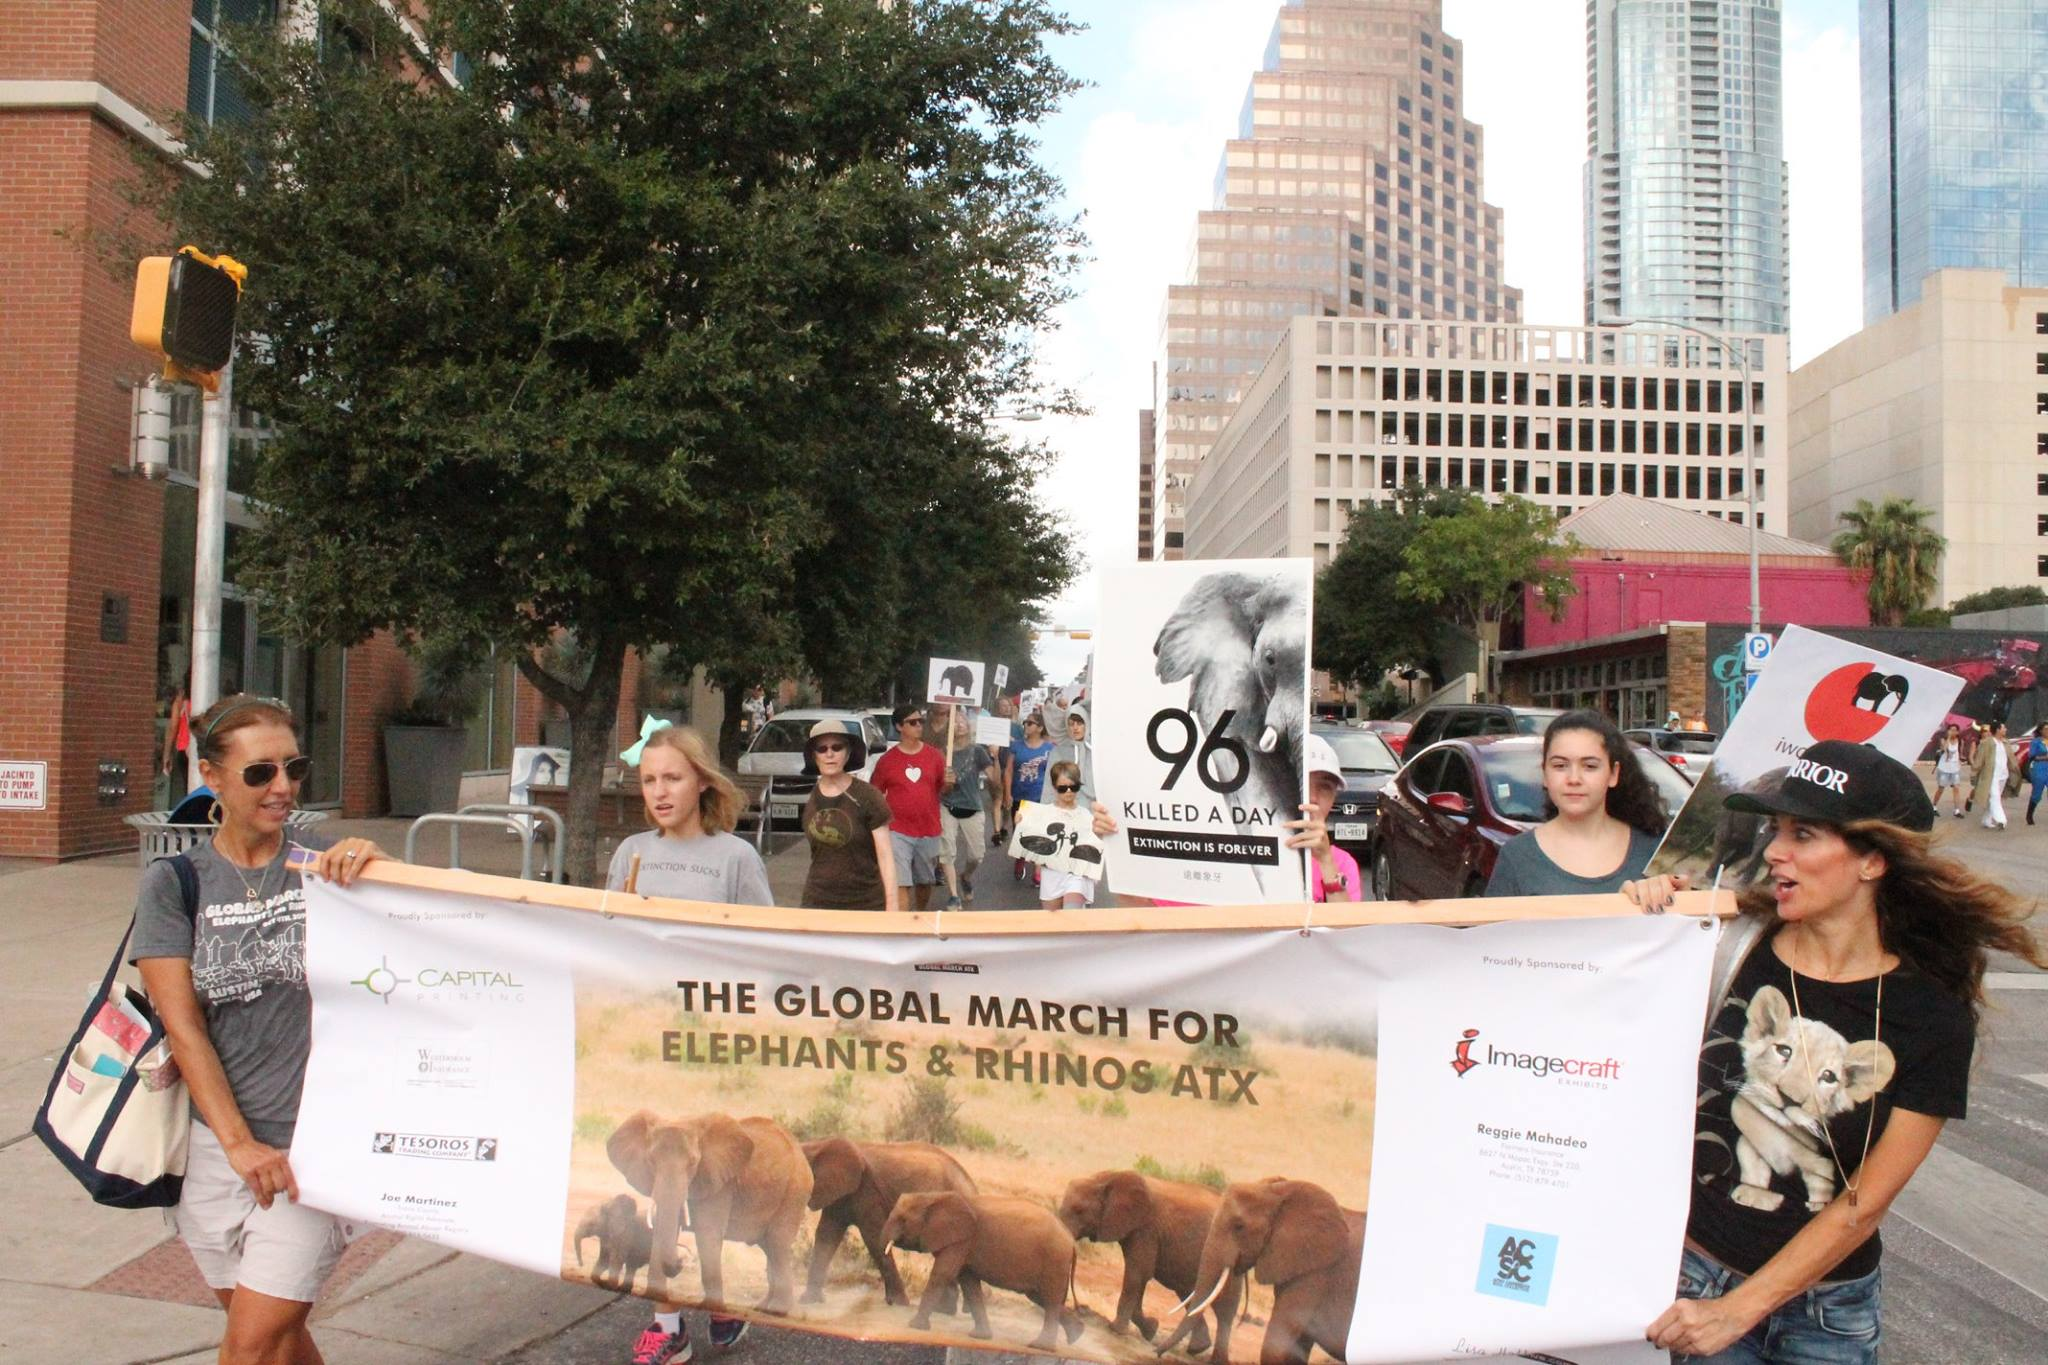 Austin locals marcH in solidarity with the global March for elephants and rhinos INTERNATIONAL in over 140 CITIES WORLDWIDE.